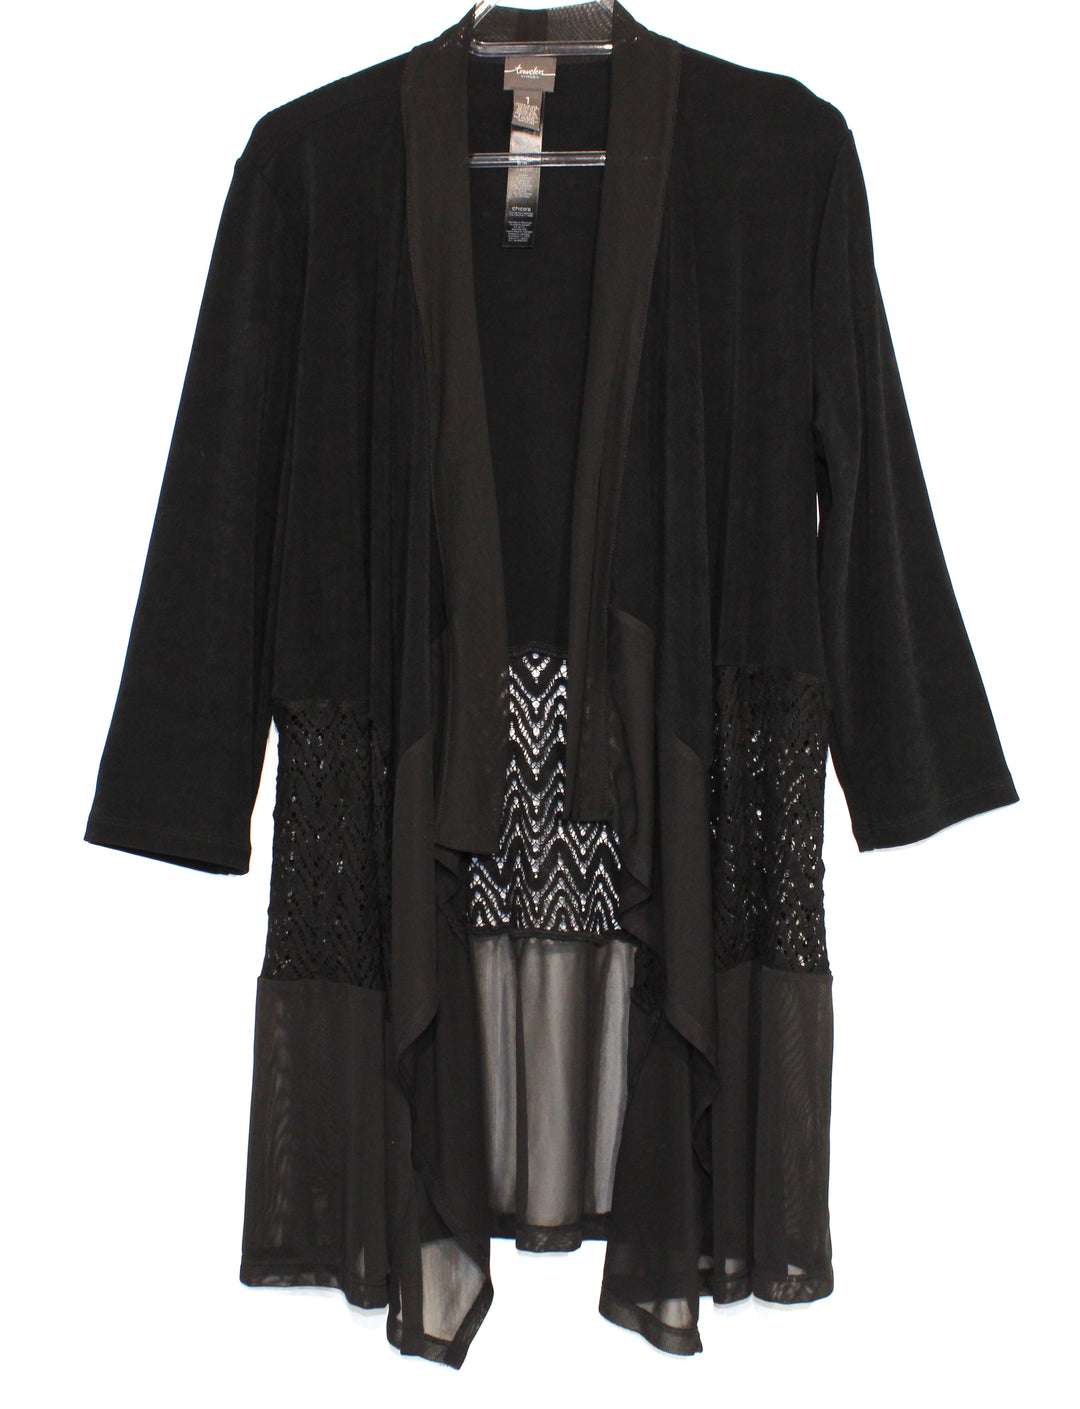 Primary Photo - BRAND: TRAVELERS BY CHICOS <BR>STYLE: COVER UP<BR>COLOR: BLACK <BR>SIZE: M/1<BR>SKU: 262-26211-137654